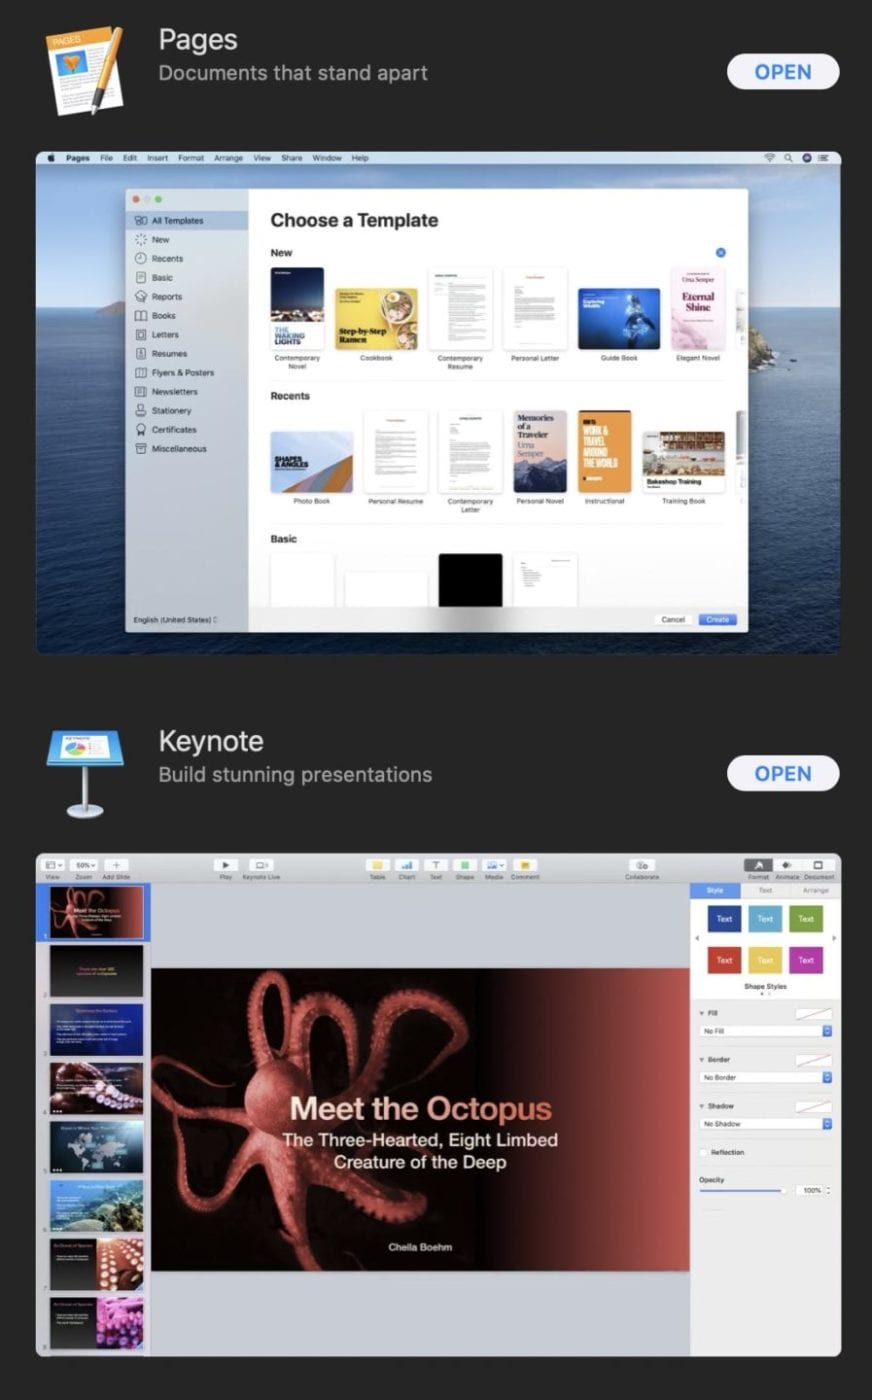 Pages, Numbers, and Keynote are available from the Mac App Store